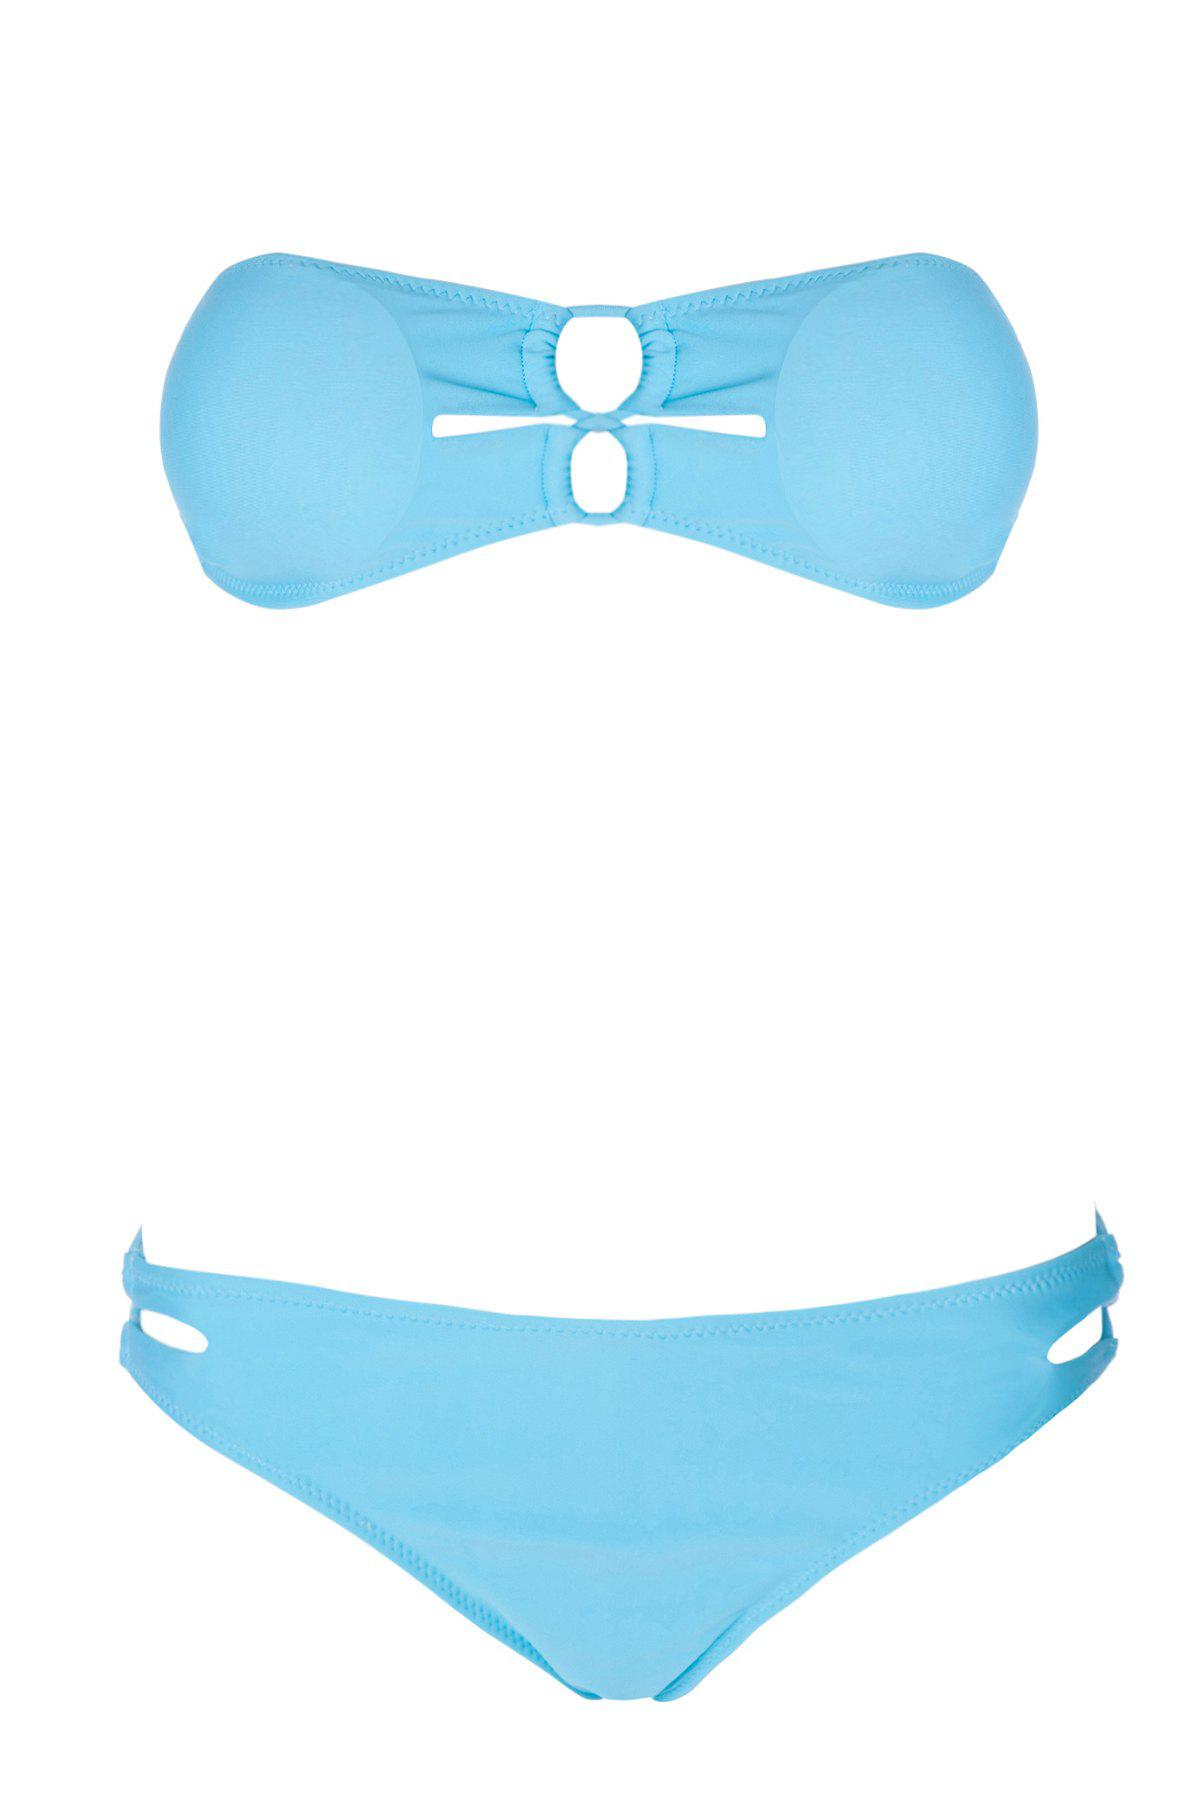 Sexy Style Solid Color Cross Openwork Bikini Set For Women - LAKE BLUE M